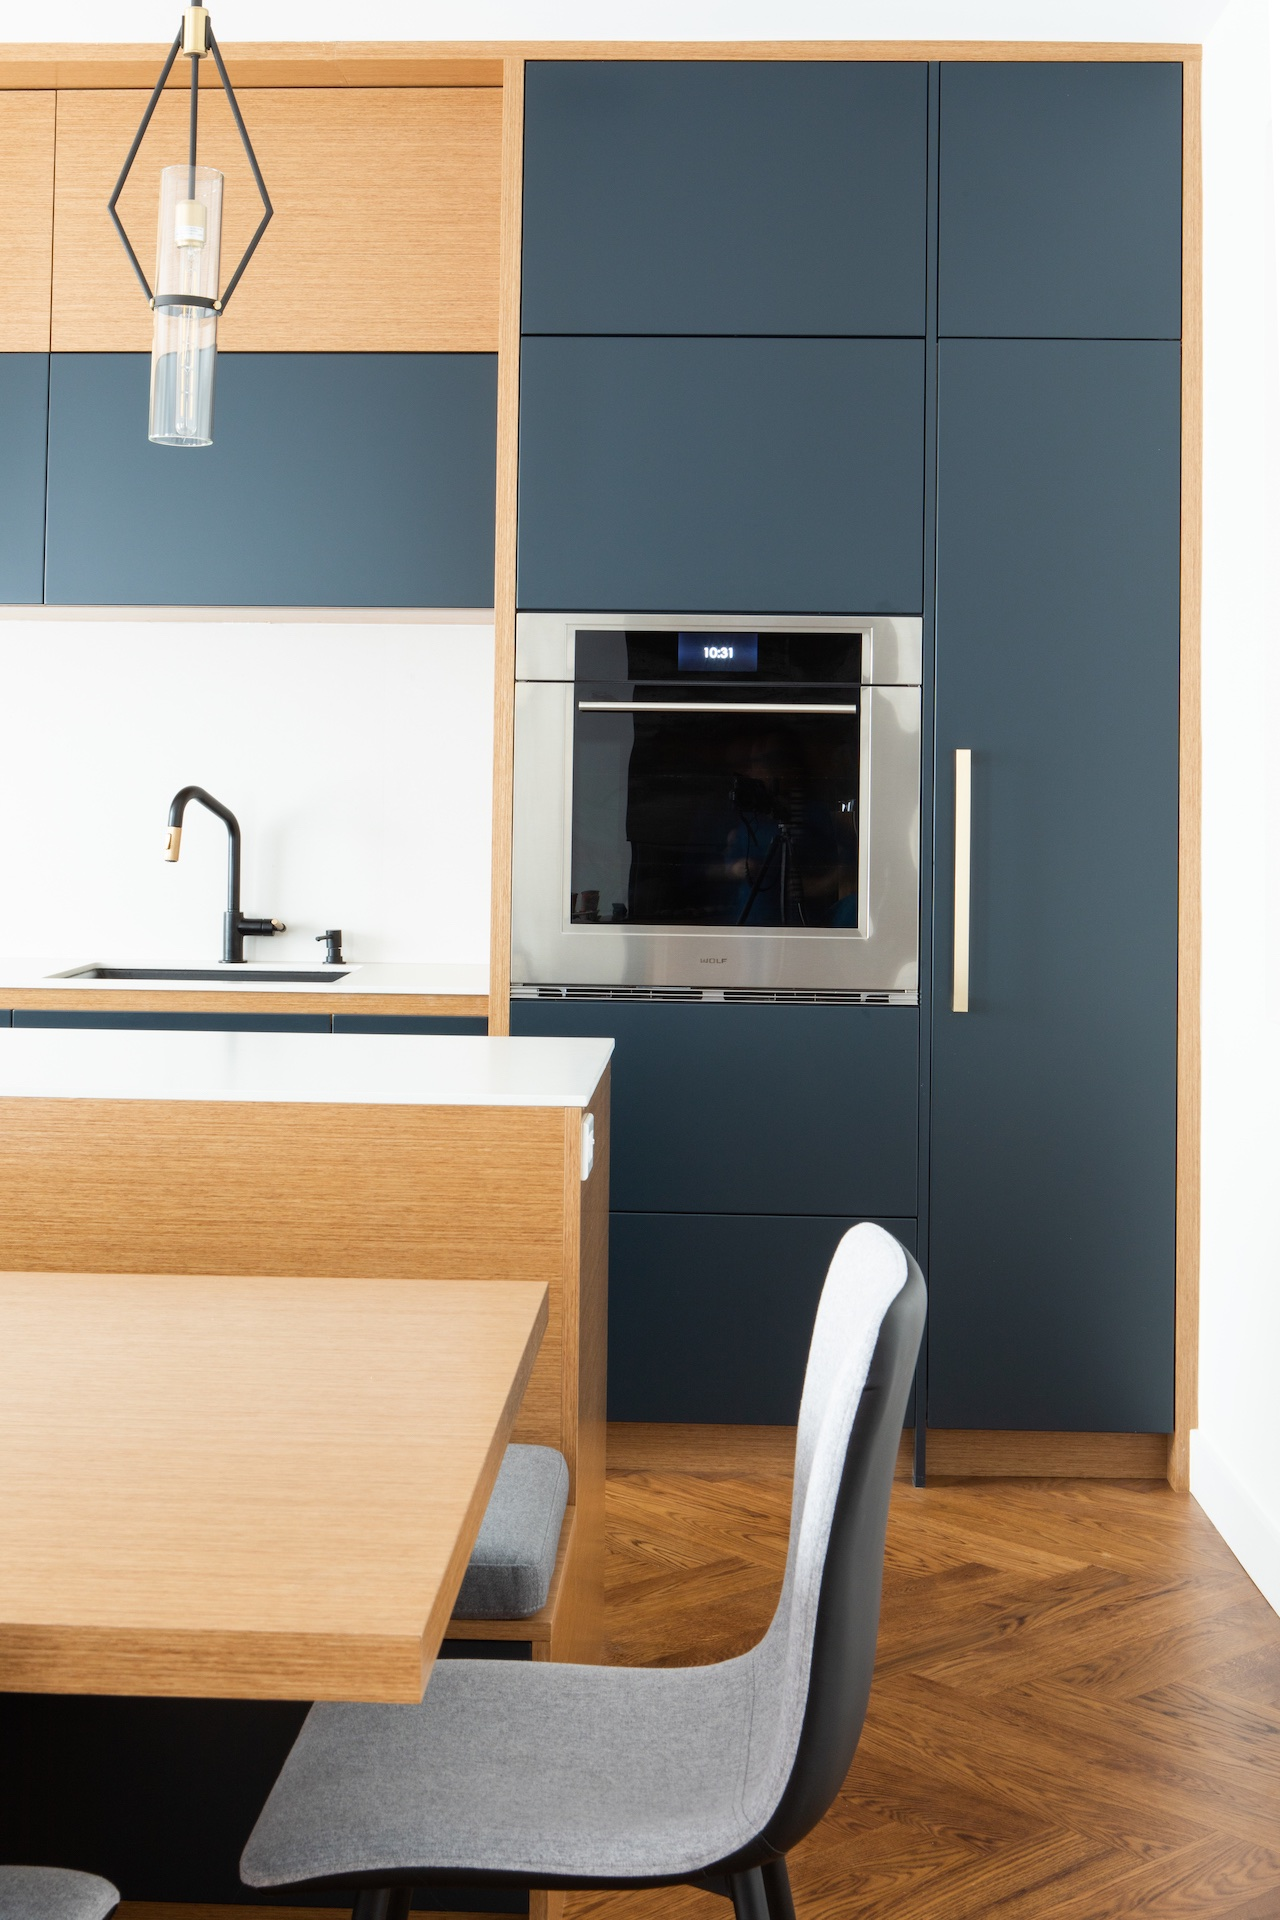 Natural wood and blue contemporary kitchen with oven